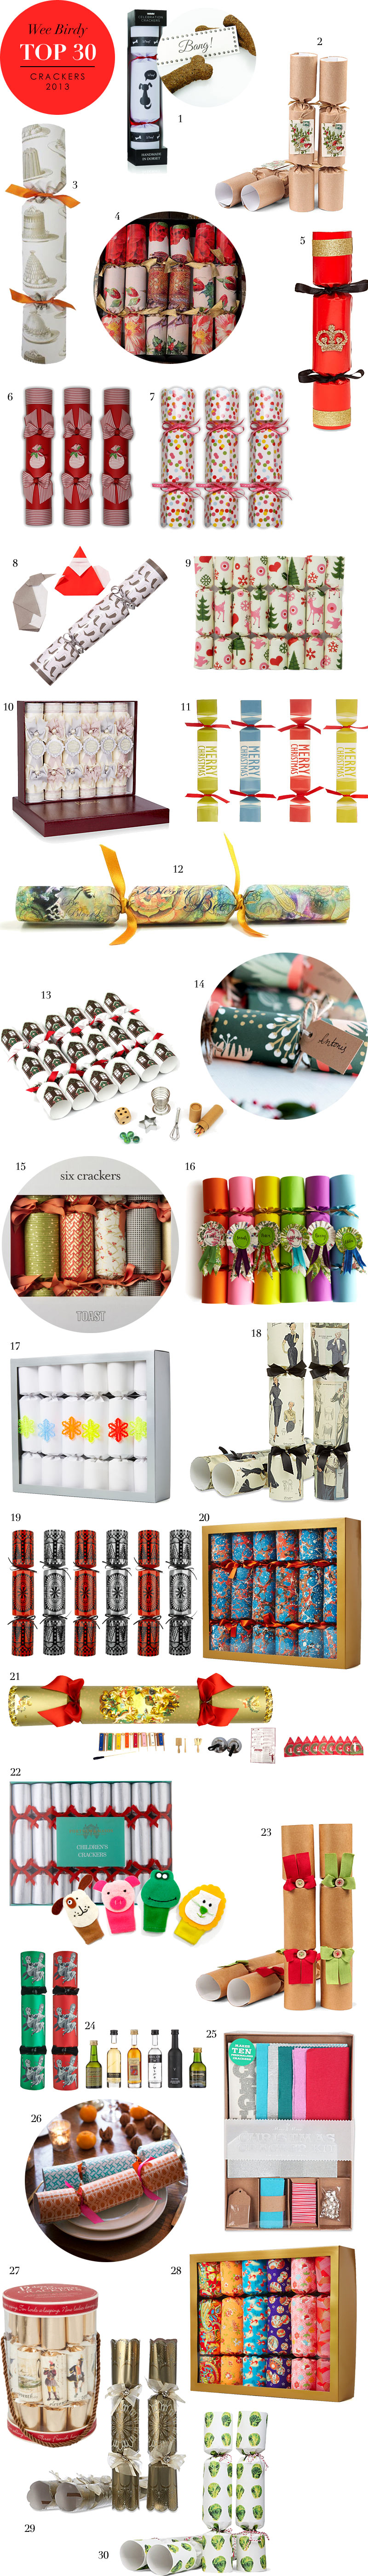 Best 30 Christmas Crackers 2013